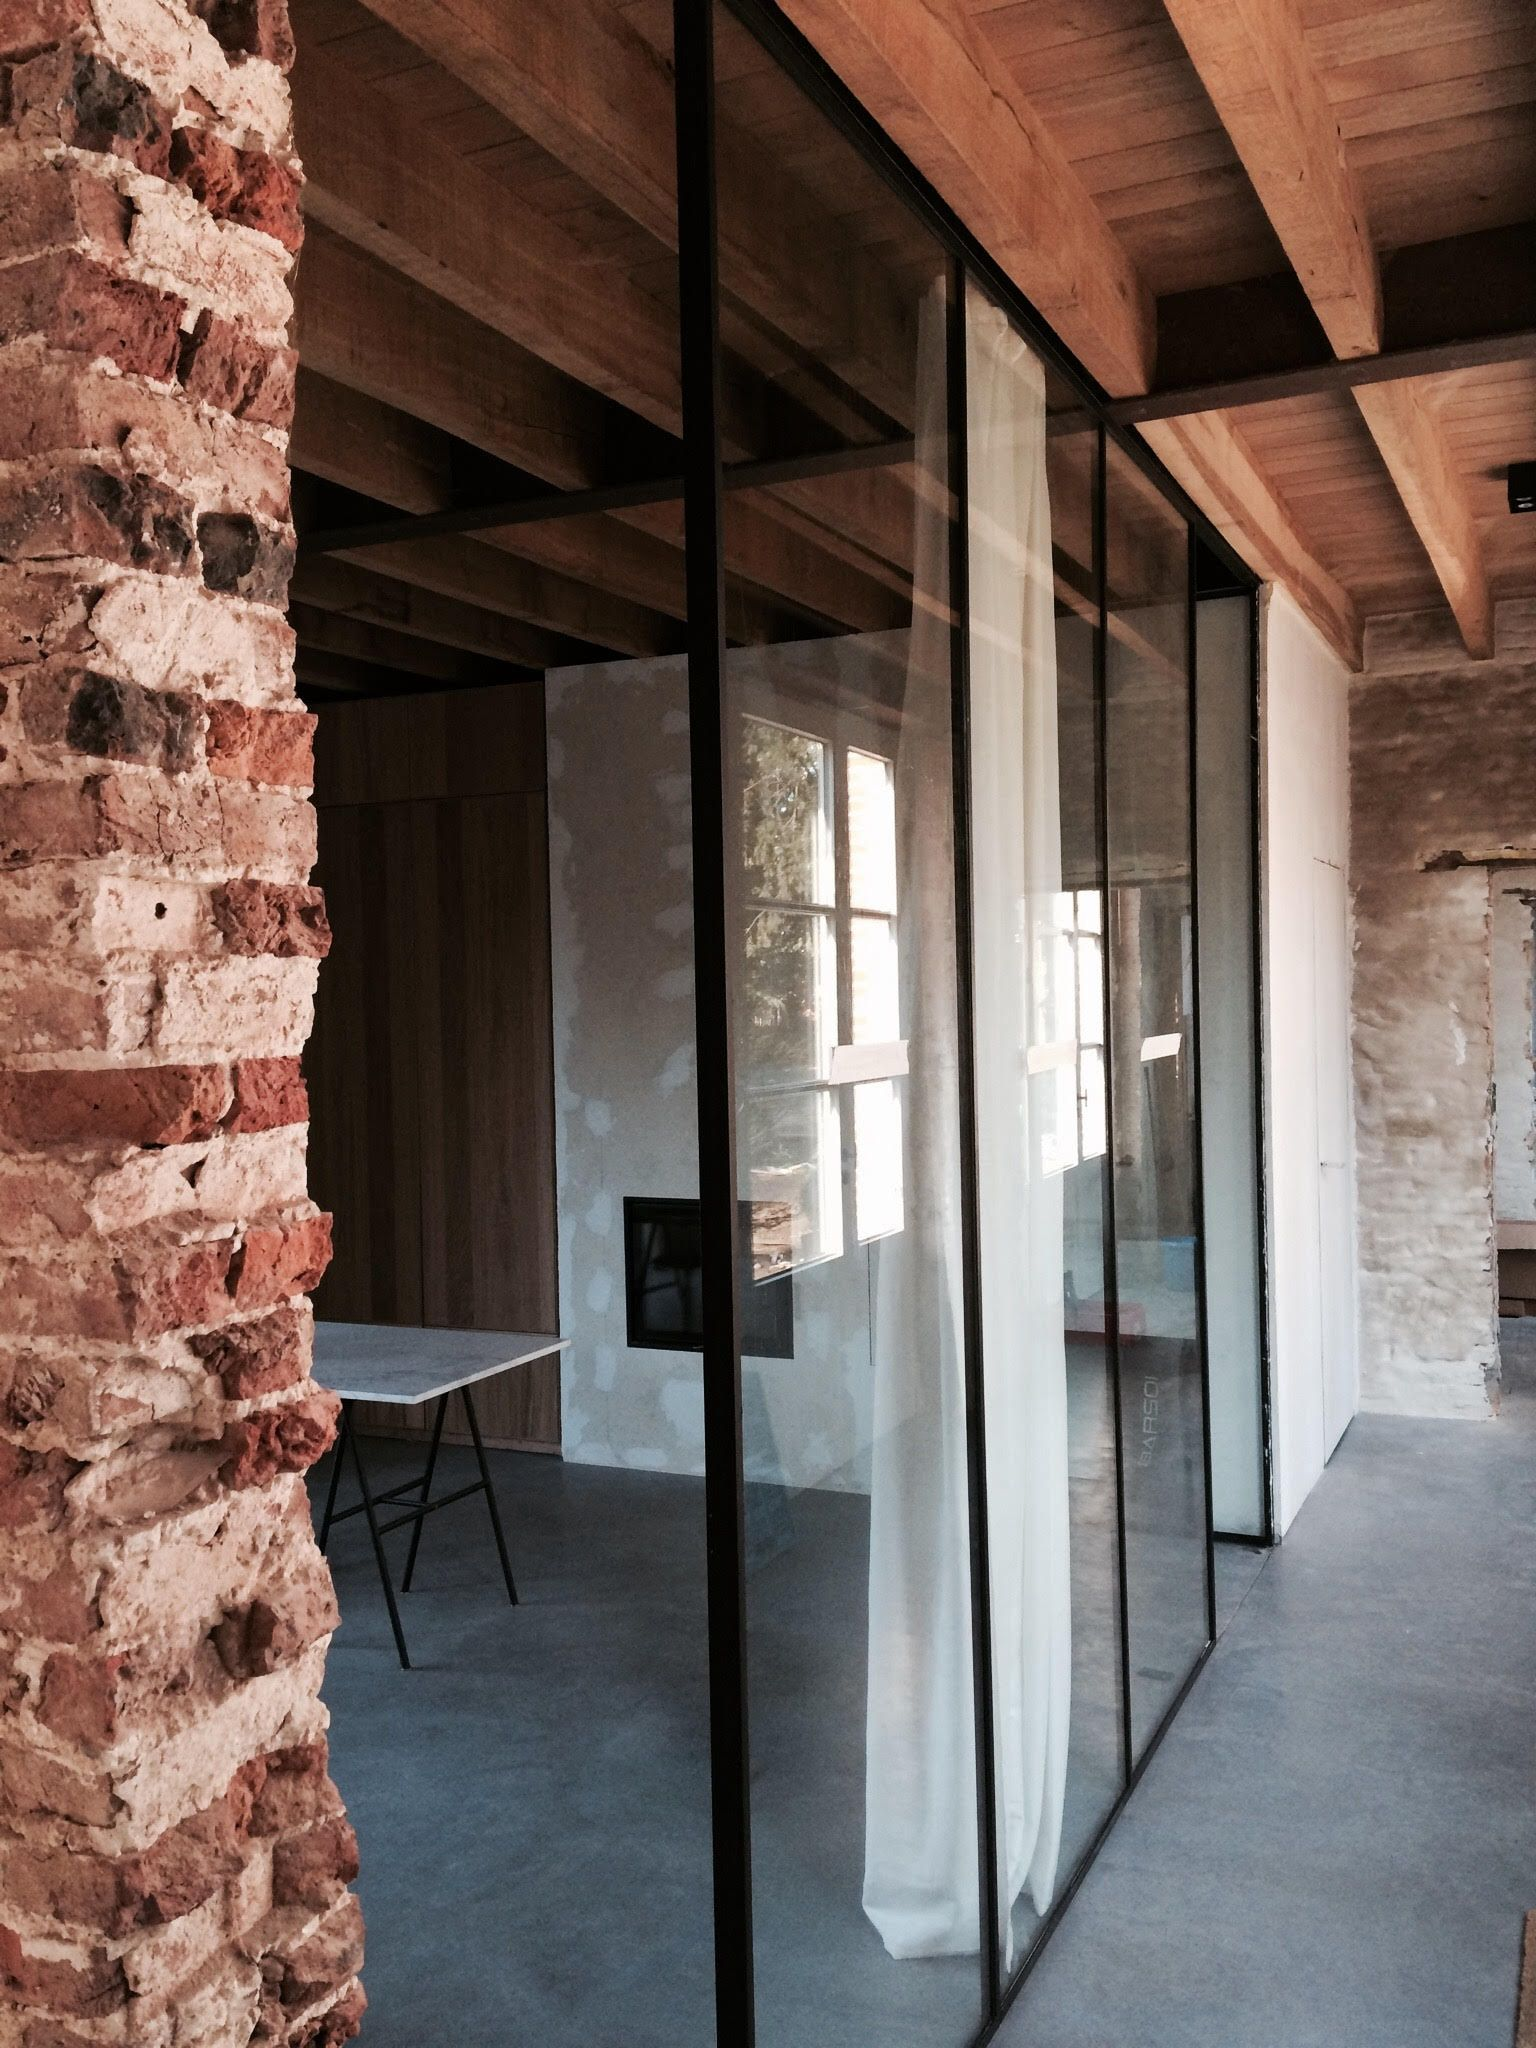 Architect: Michiel Van Raemdonck Steel window frame - restoration remise www.vanraemdonckmichiel.be